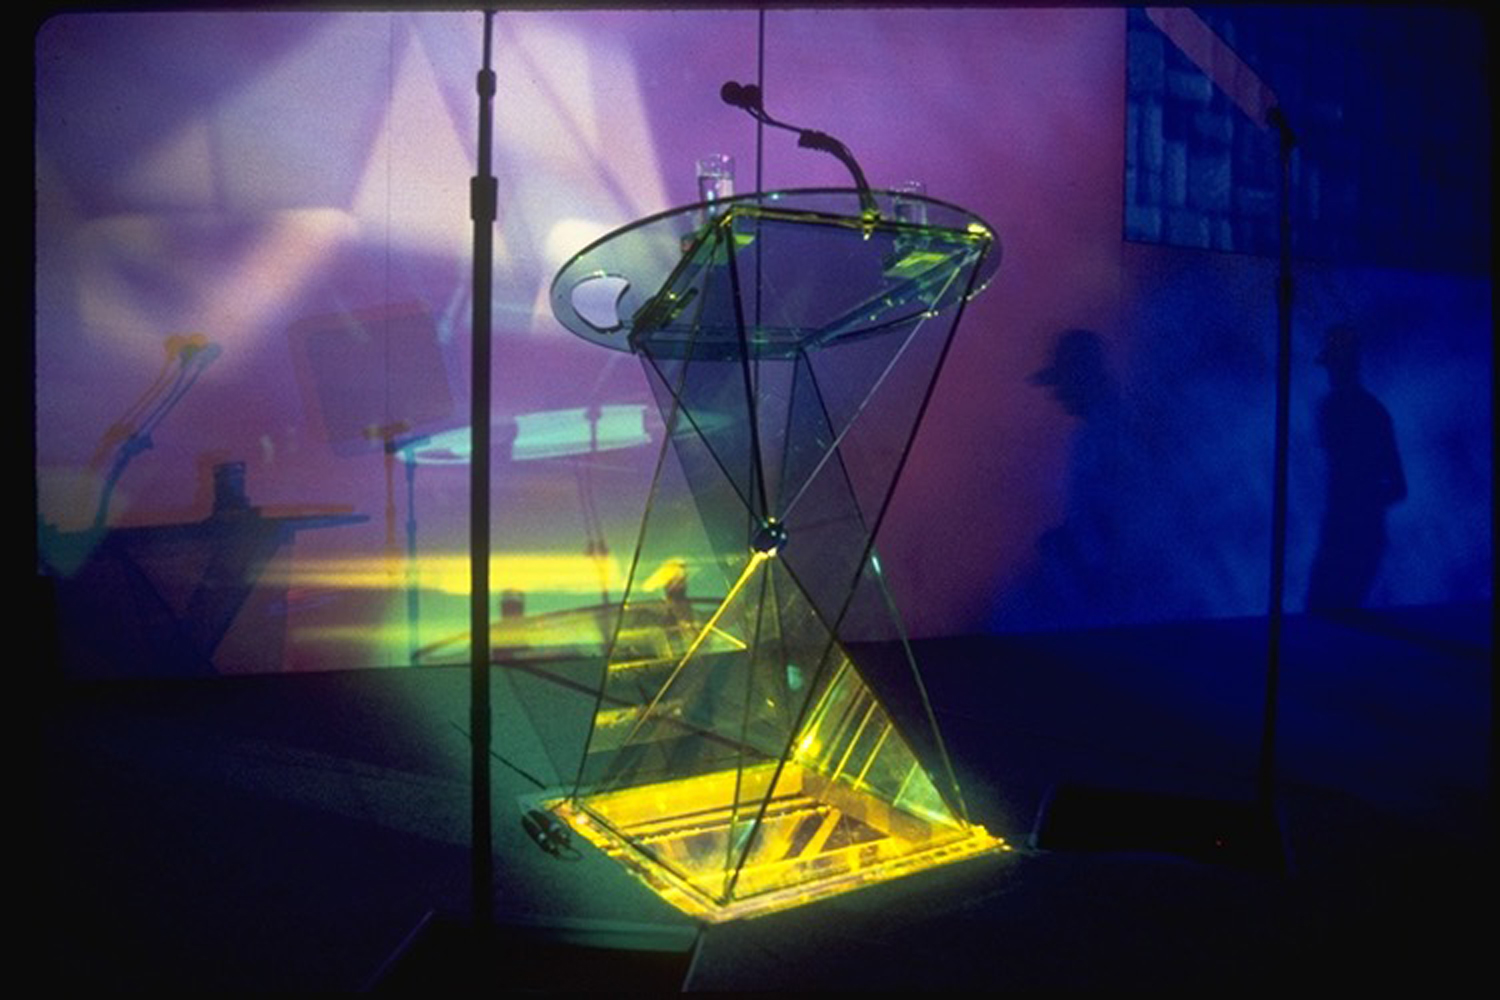 Merck Salesforce Meeting -  Underlit green-tinted plexiglass lectern, which folds completely flat for transport